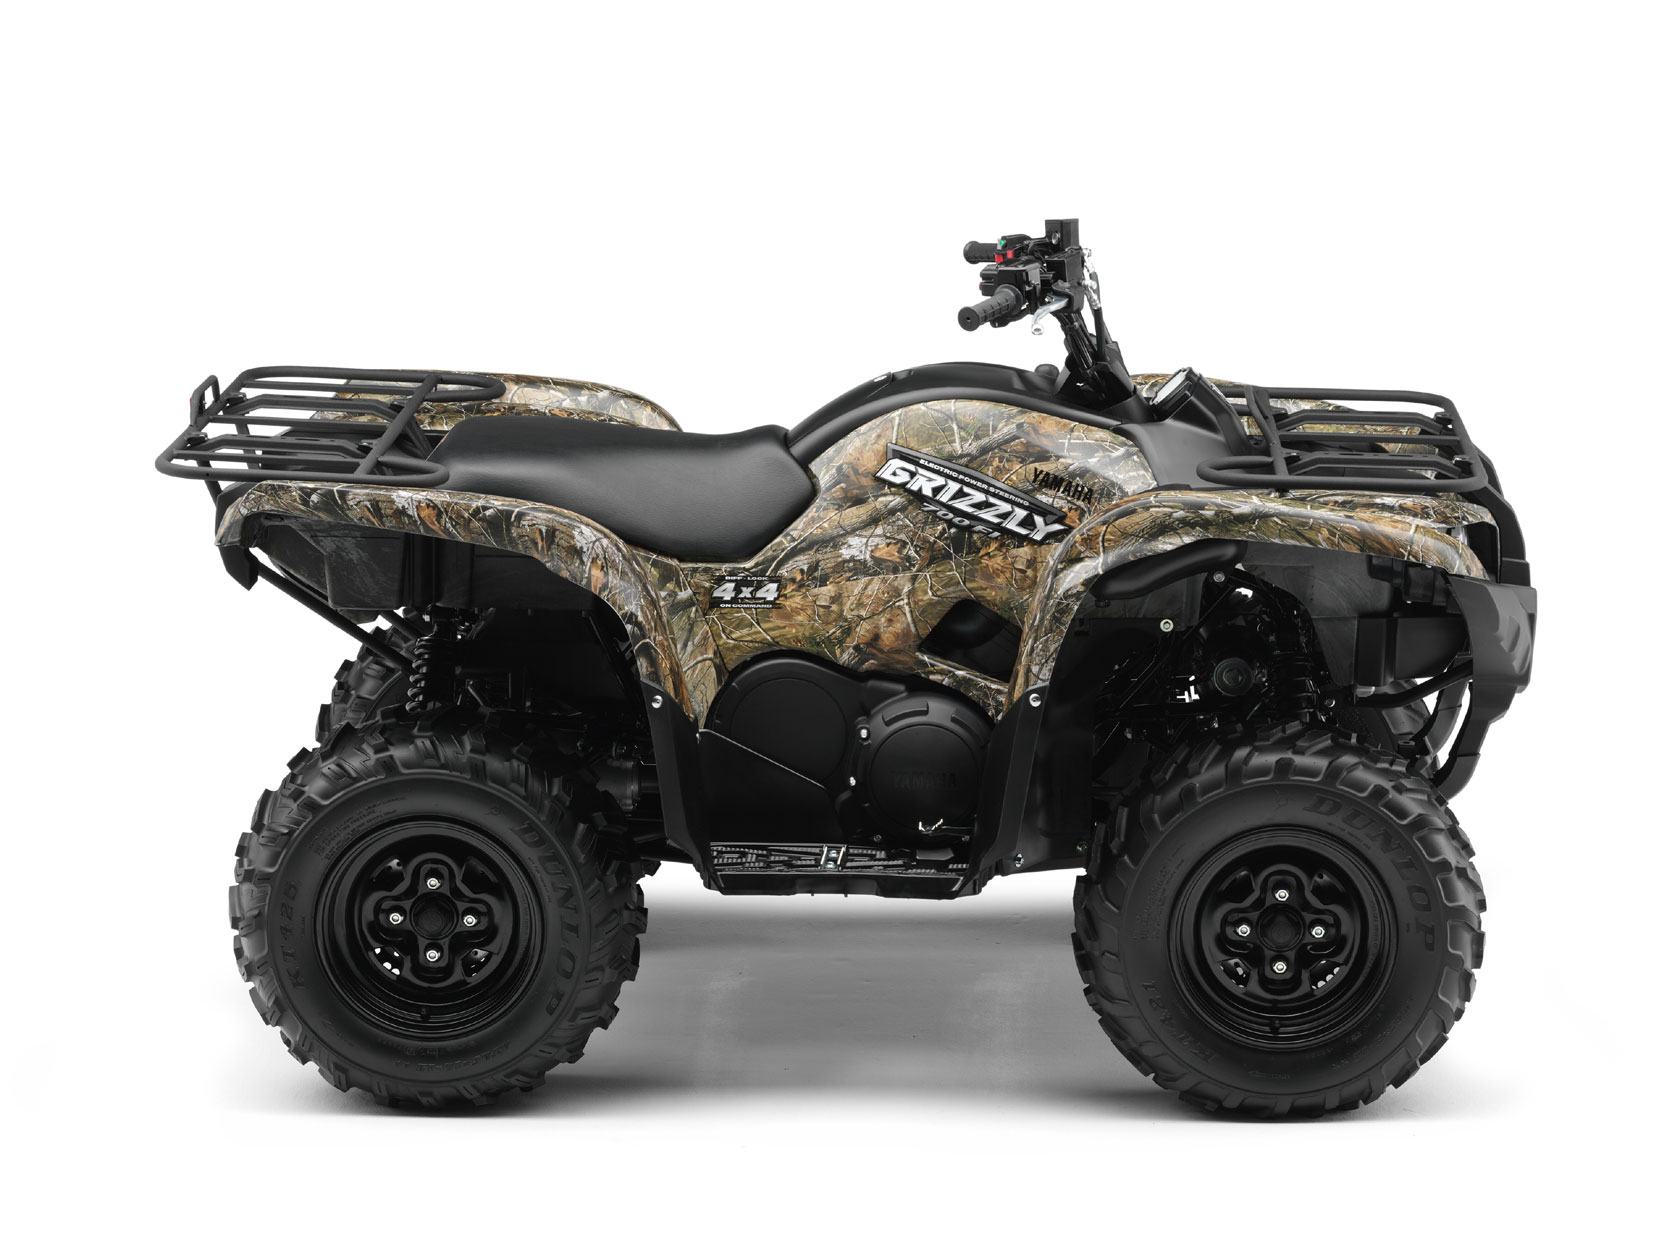 2009 yamaha grizzly 700 fi camo ap hd for Yamaha grizzly atv